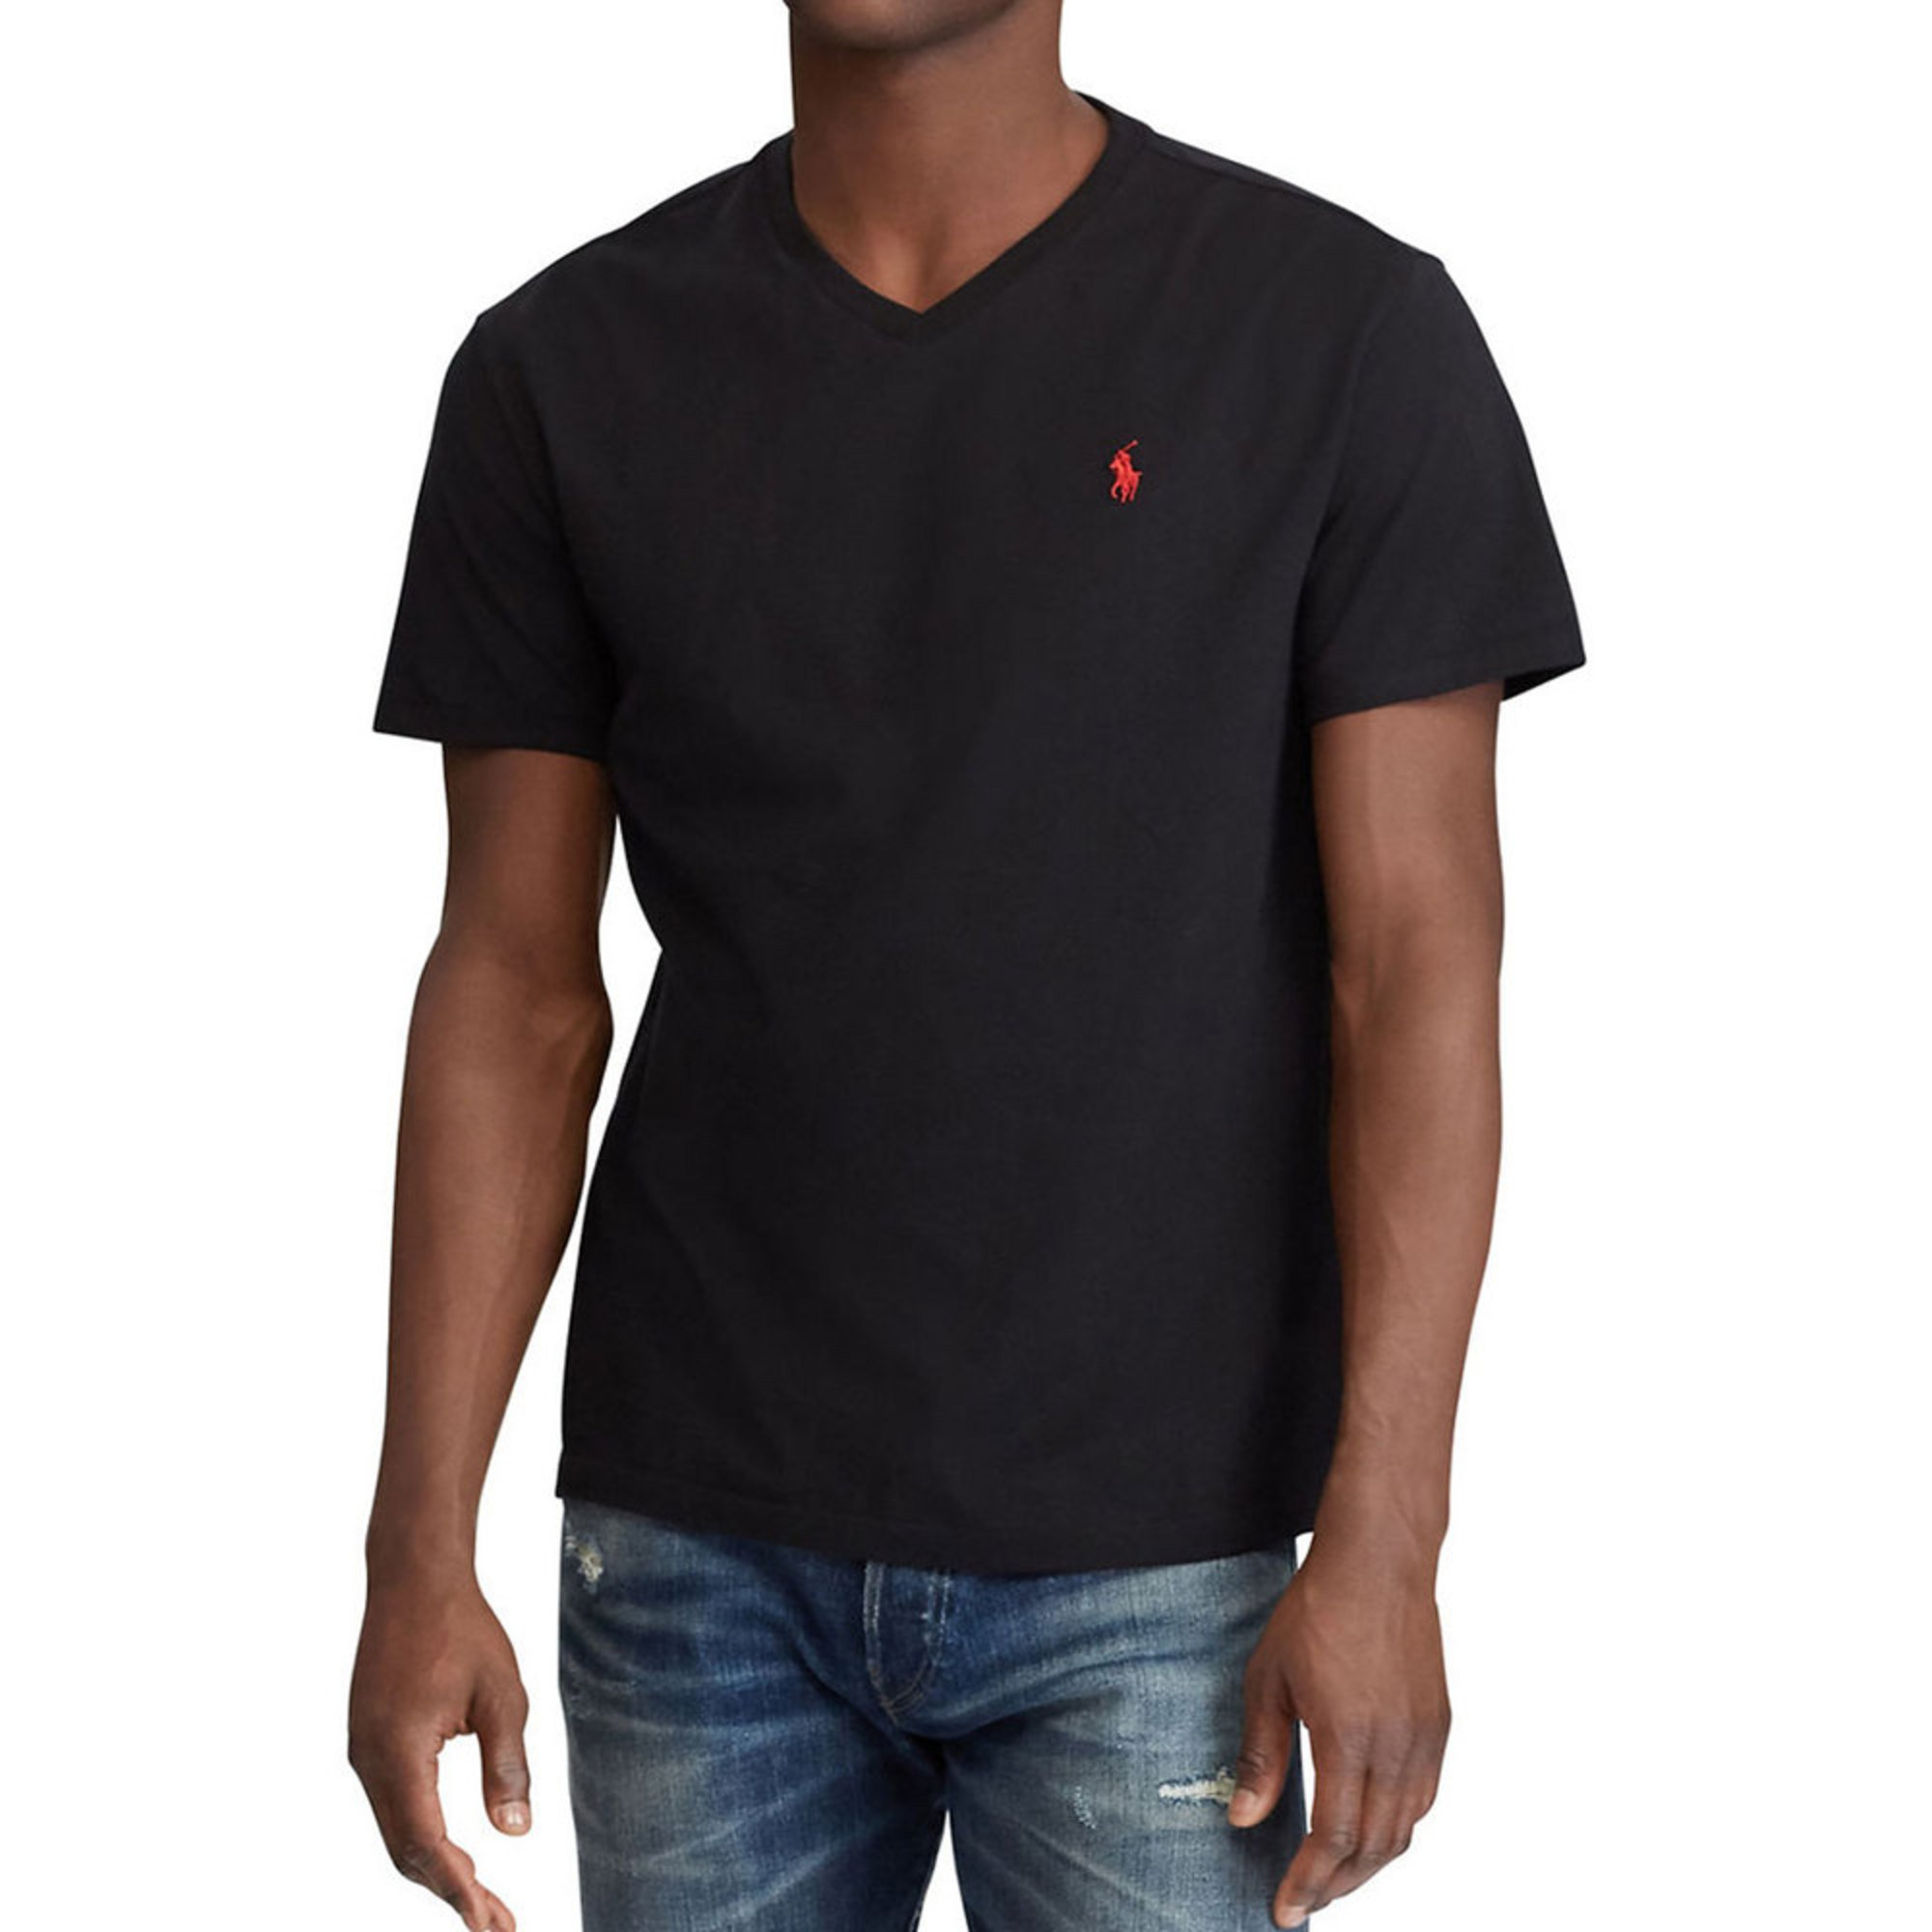 6d12138d9 Polo Ralph Lauren Short Sleeve V-neck Tee In Black | Casual & Dress ...